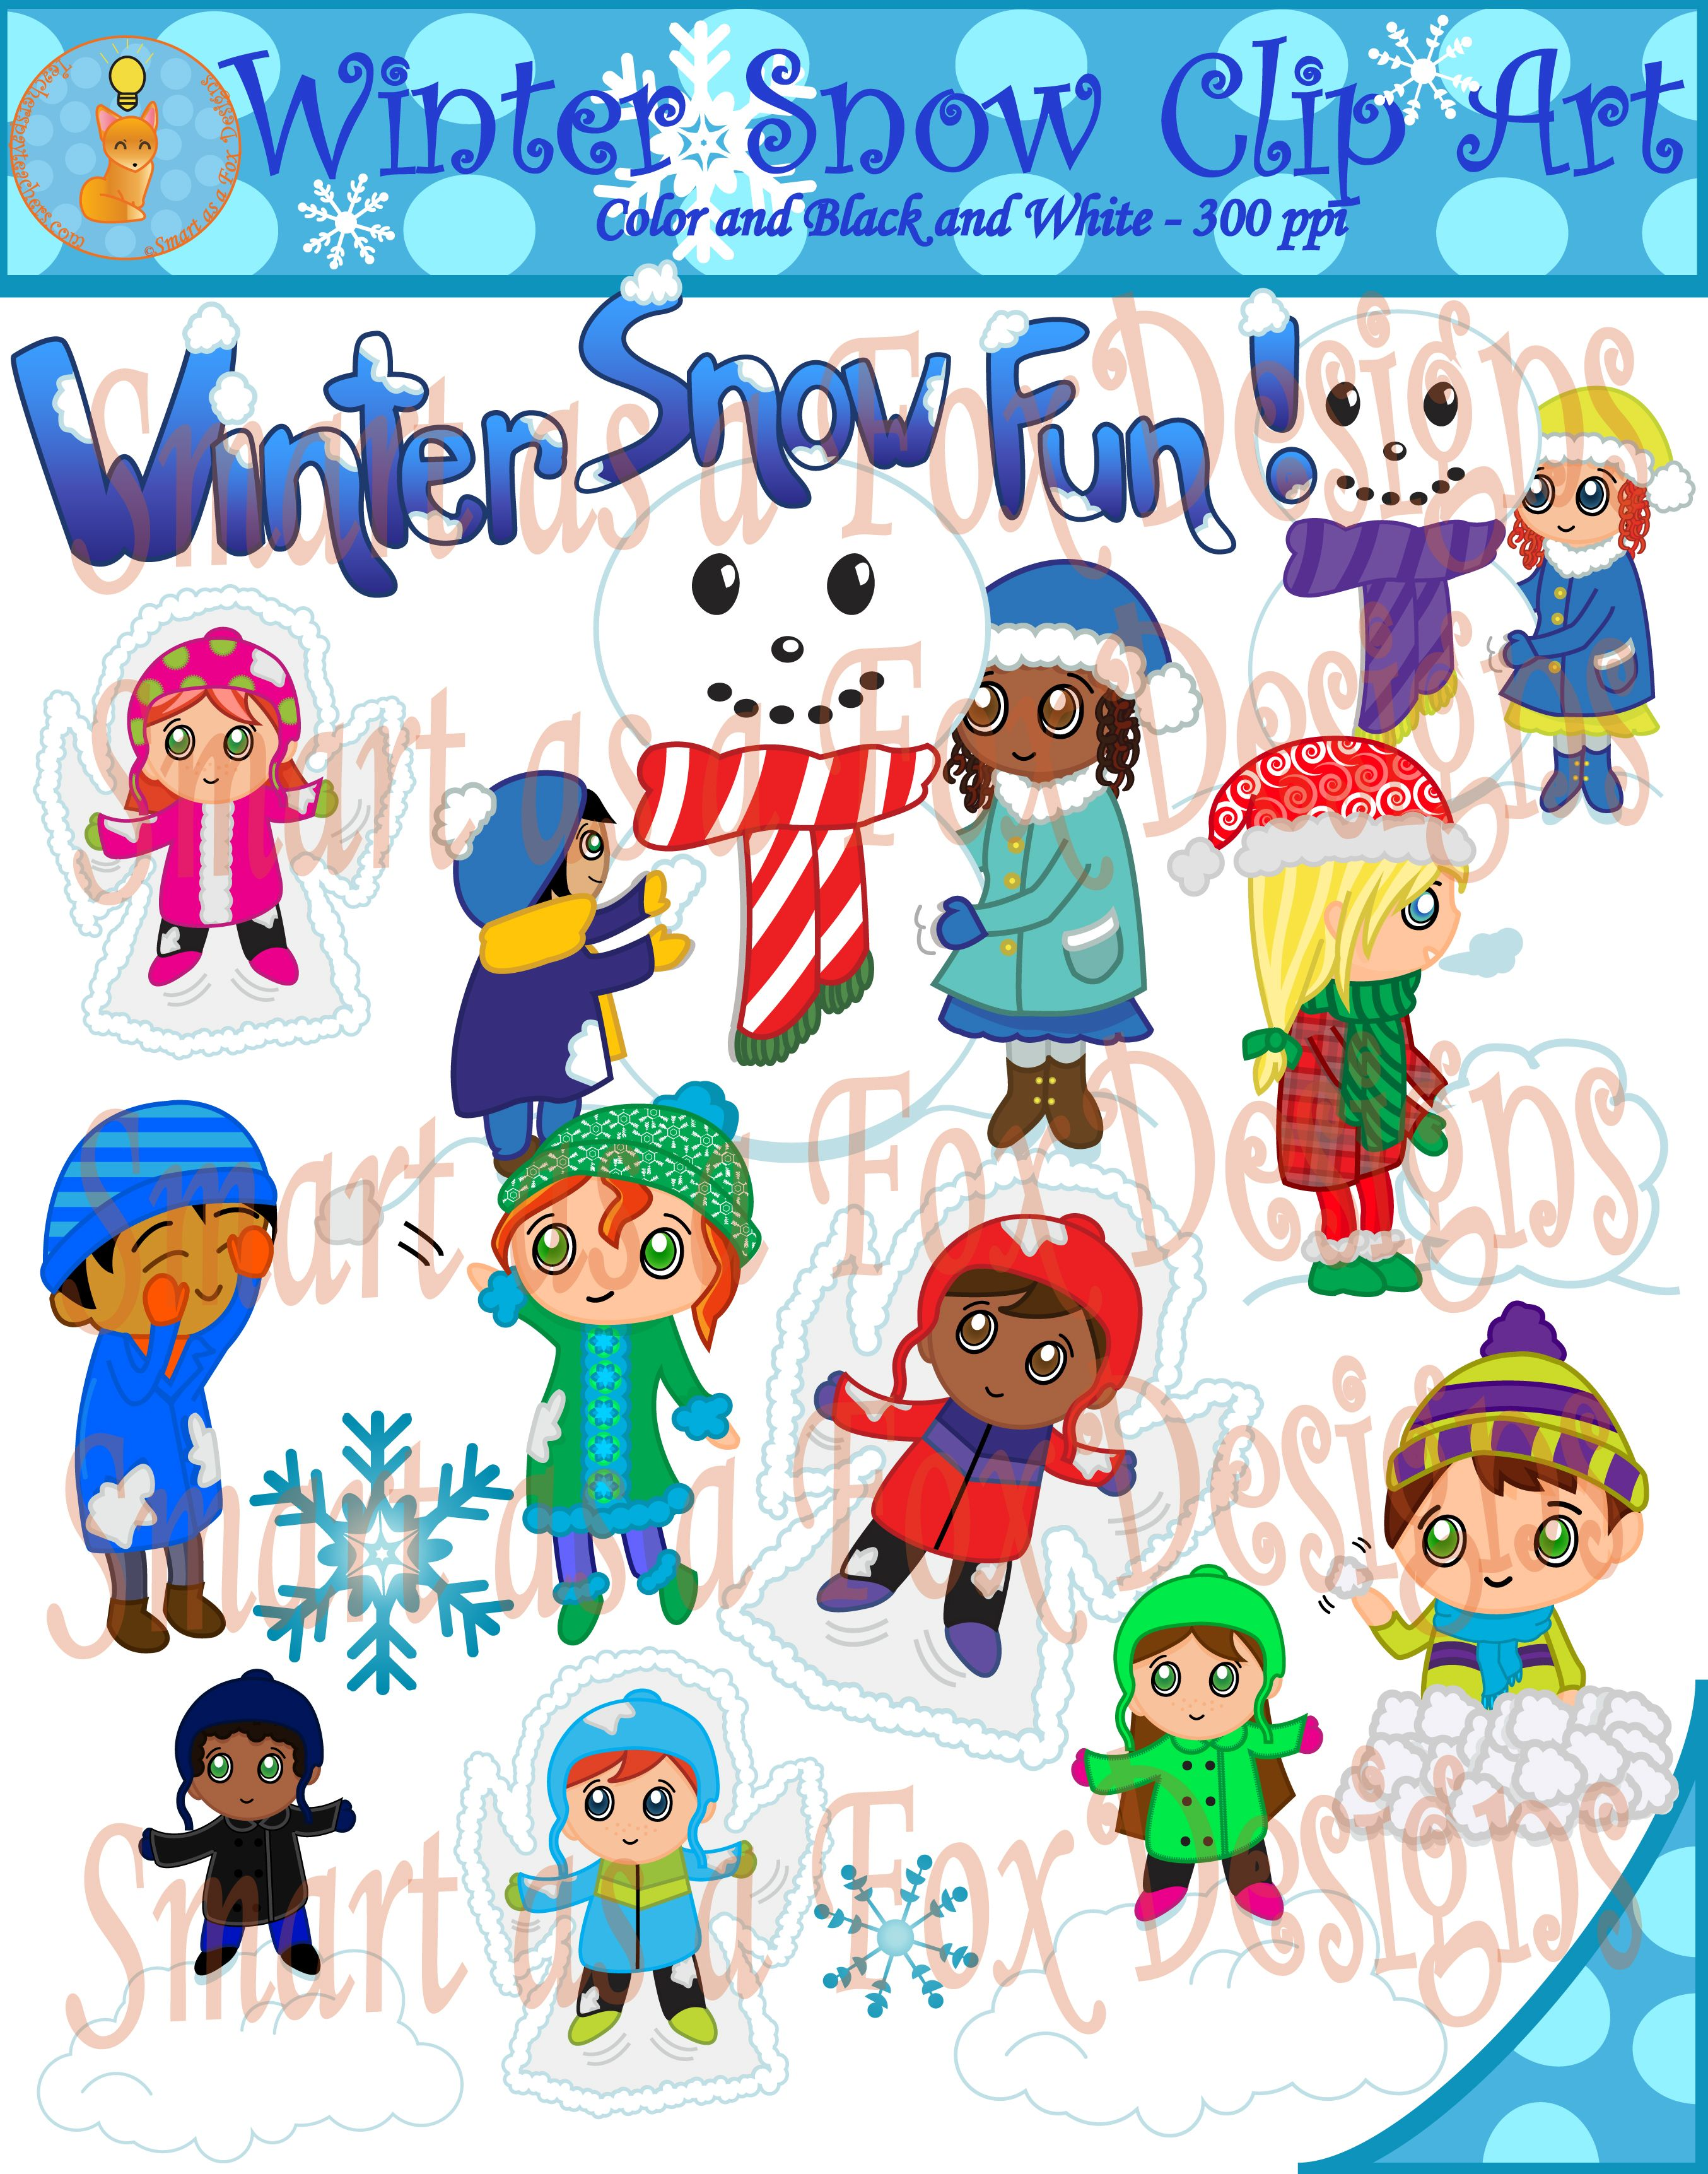 small resolution of  winter snow fun clipart by smart as a fox designs this collection contains 41 clip art pieces 25 vividly colored images and 16 black and white